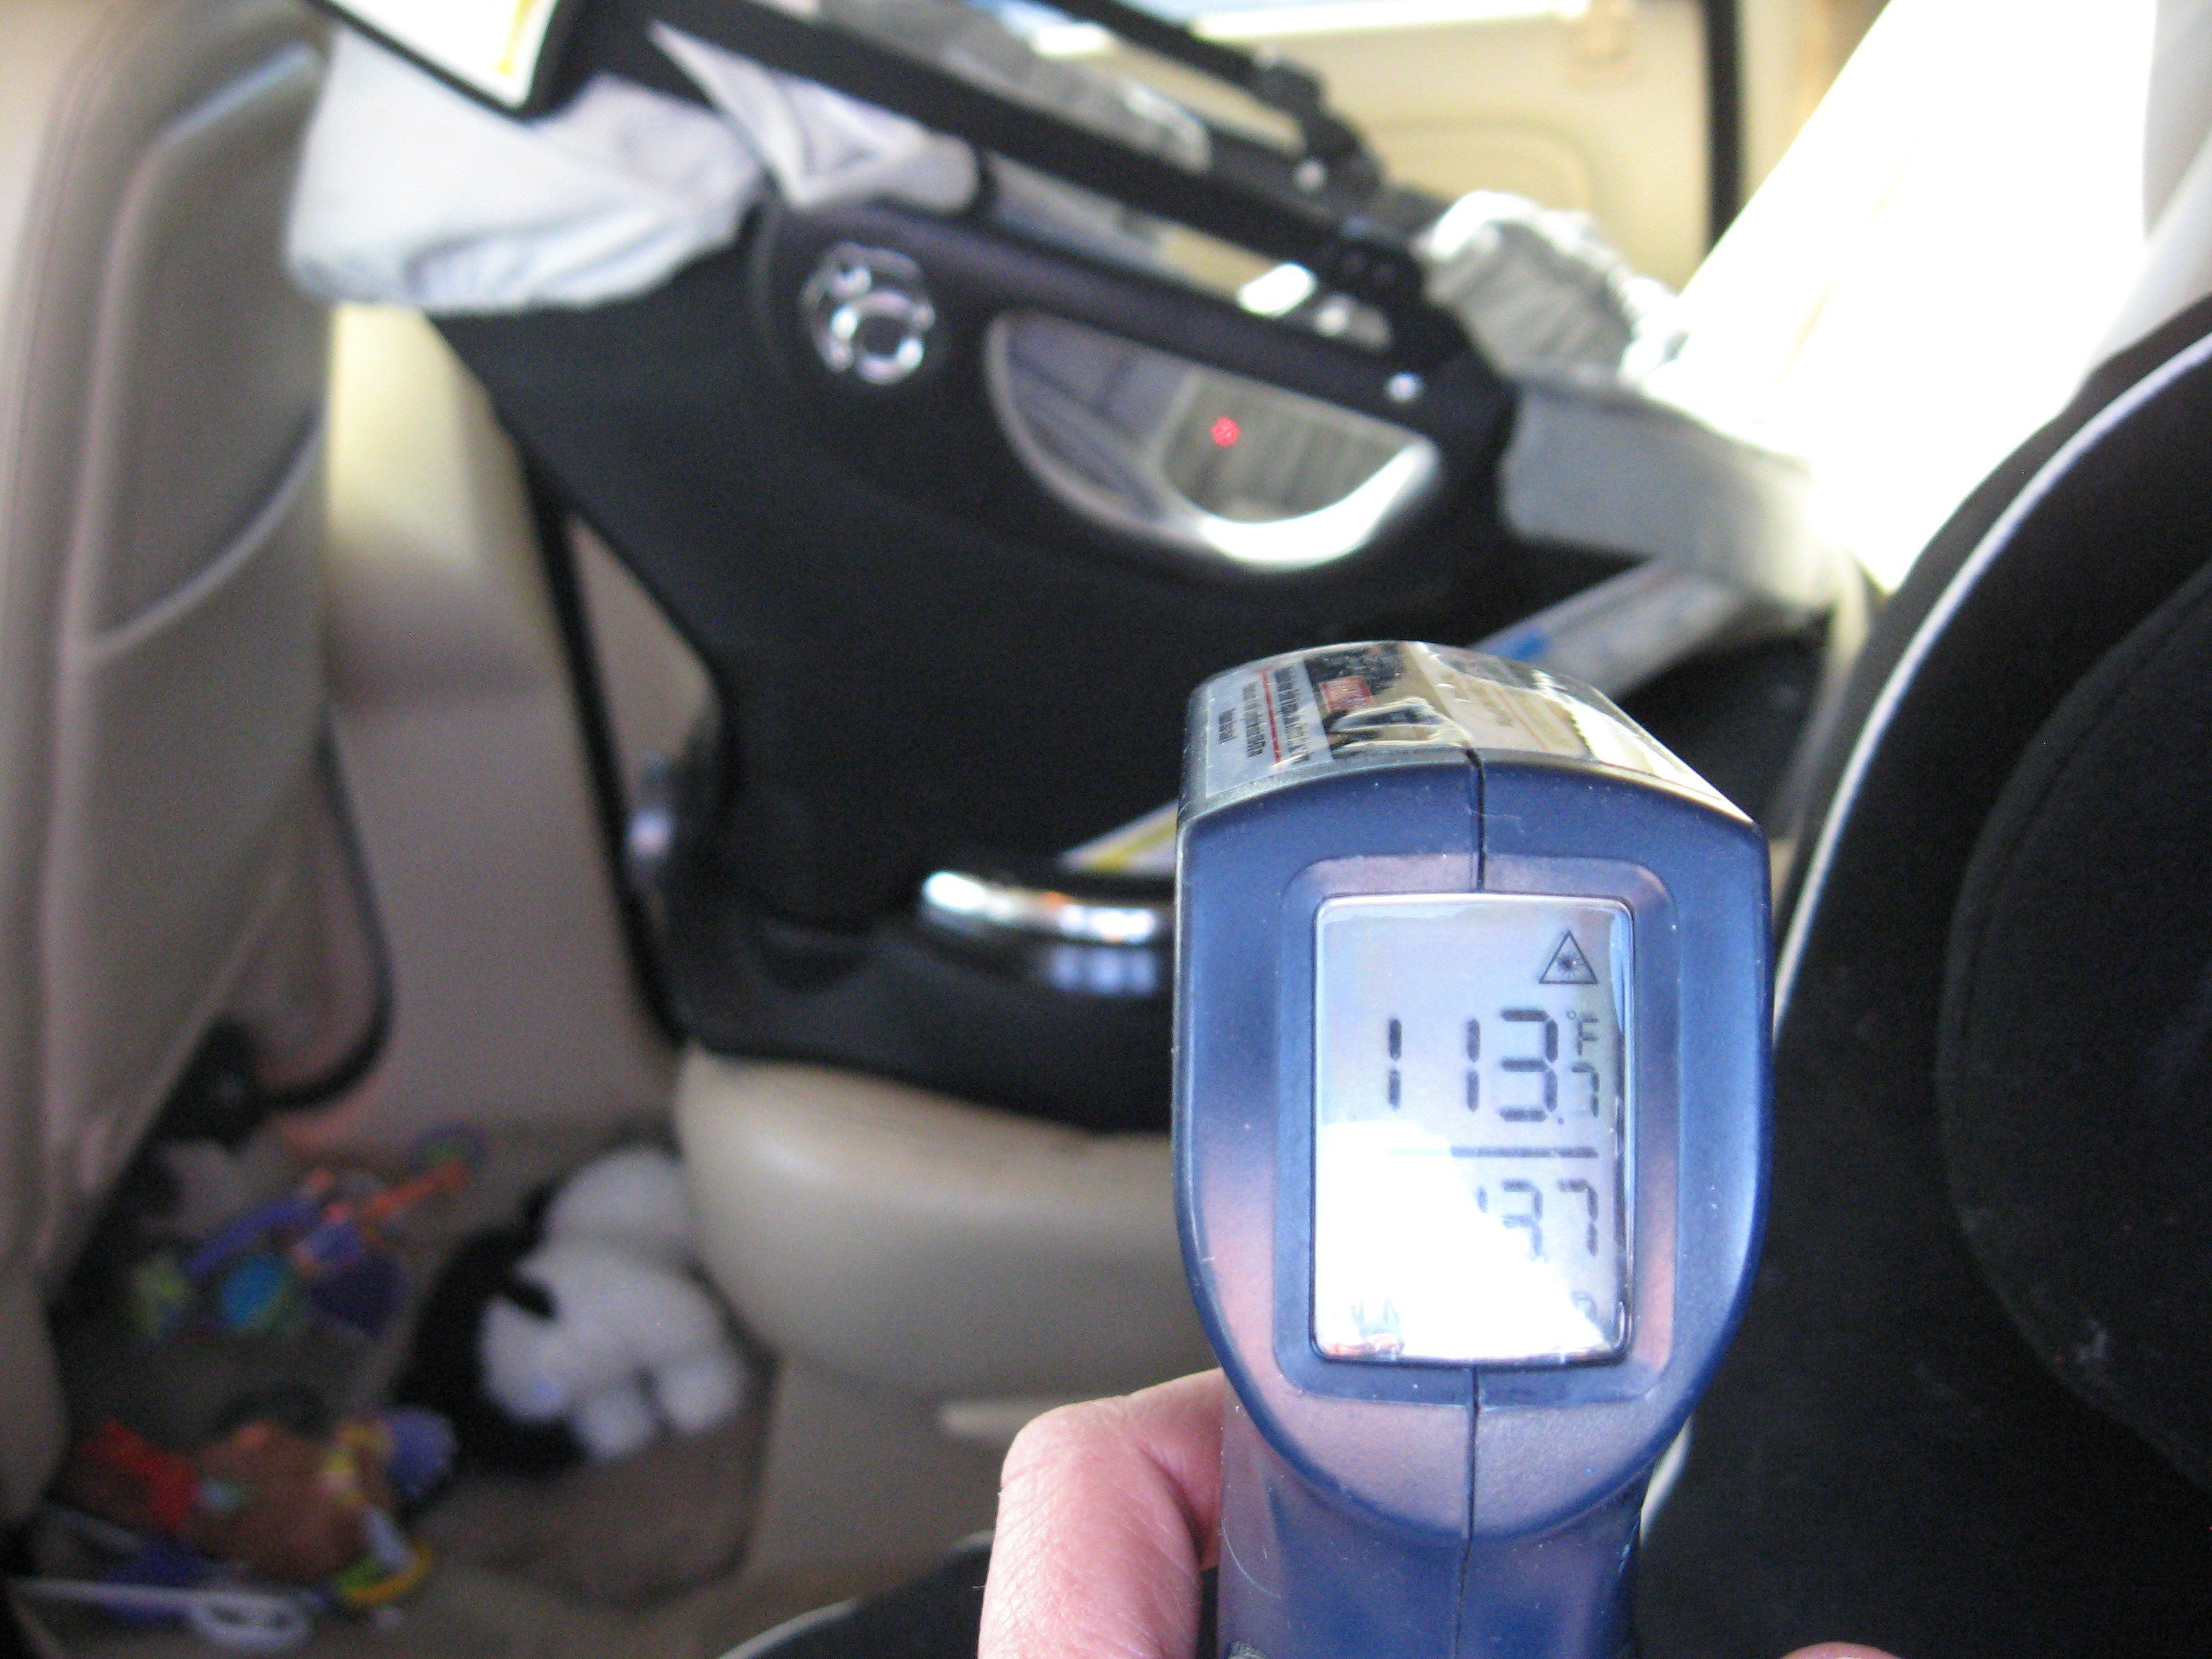 The infant car seat was 113 degrees, police said. (Source: Tempe Police Department)